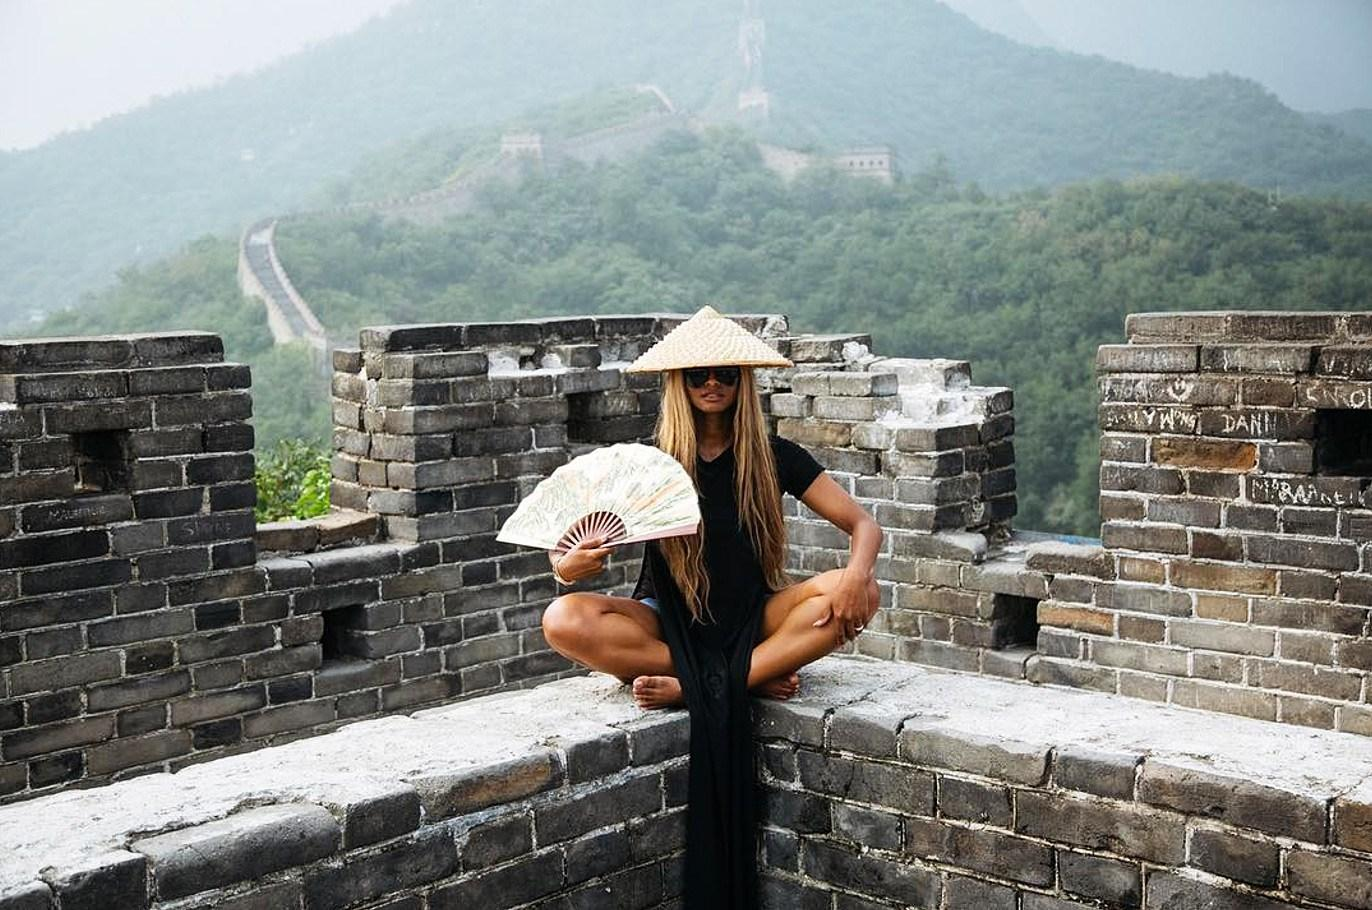 Baby       's First Slide! See Ciara Ride Down the Great Wall of China with 3-Month-Old Daughter Strapped to Her    Chest